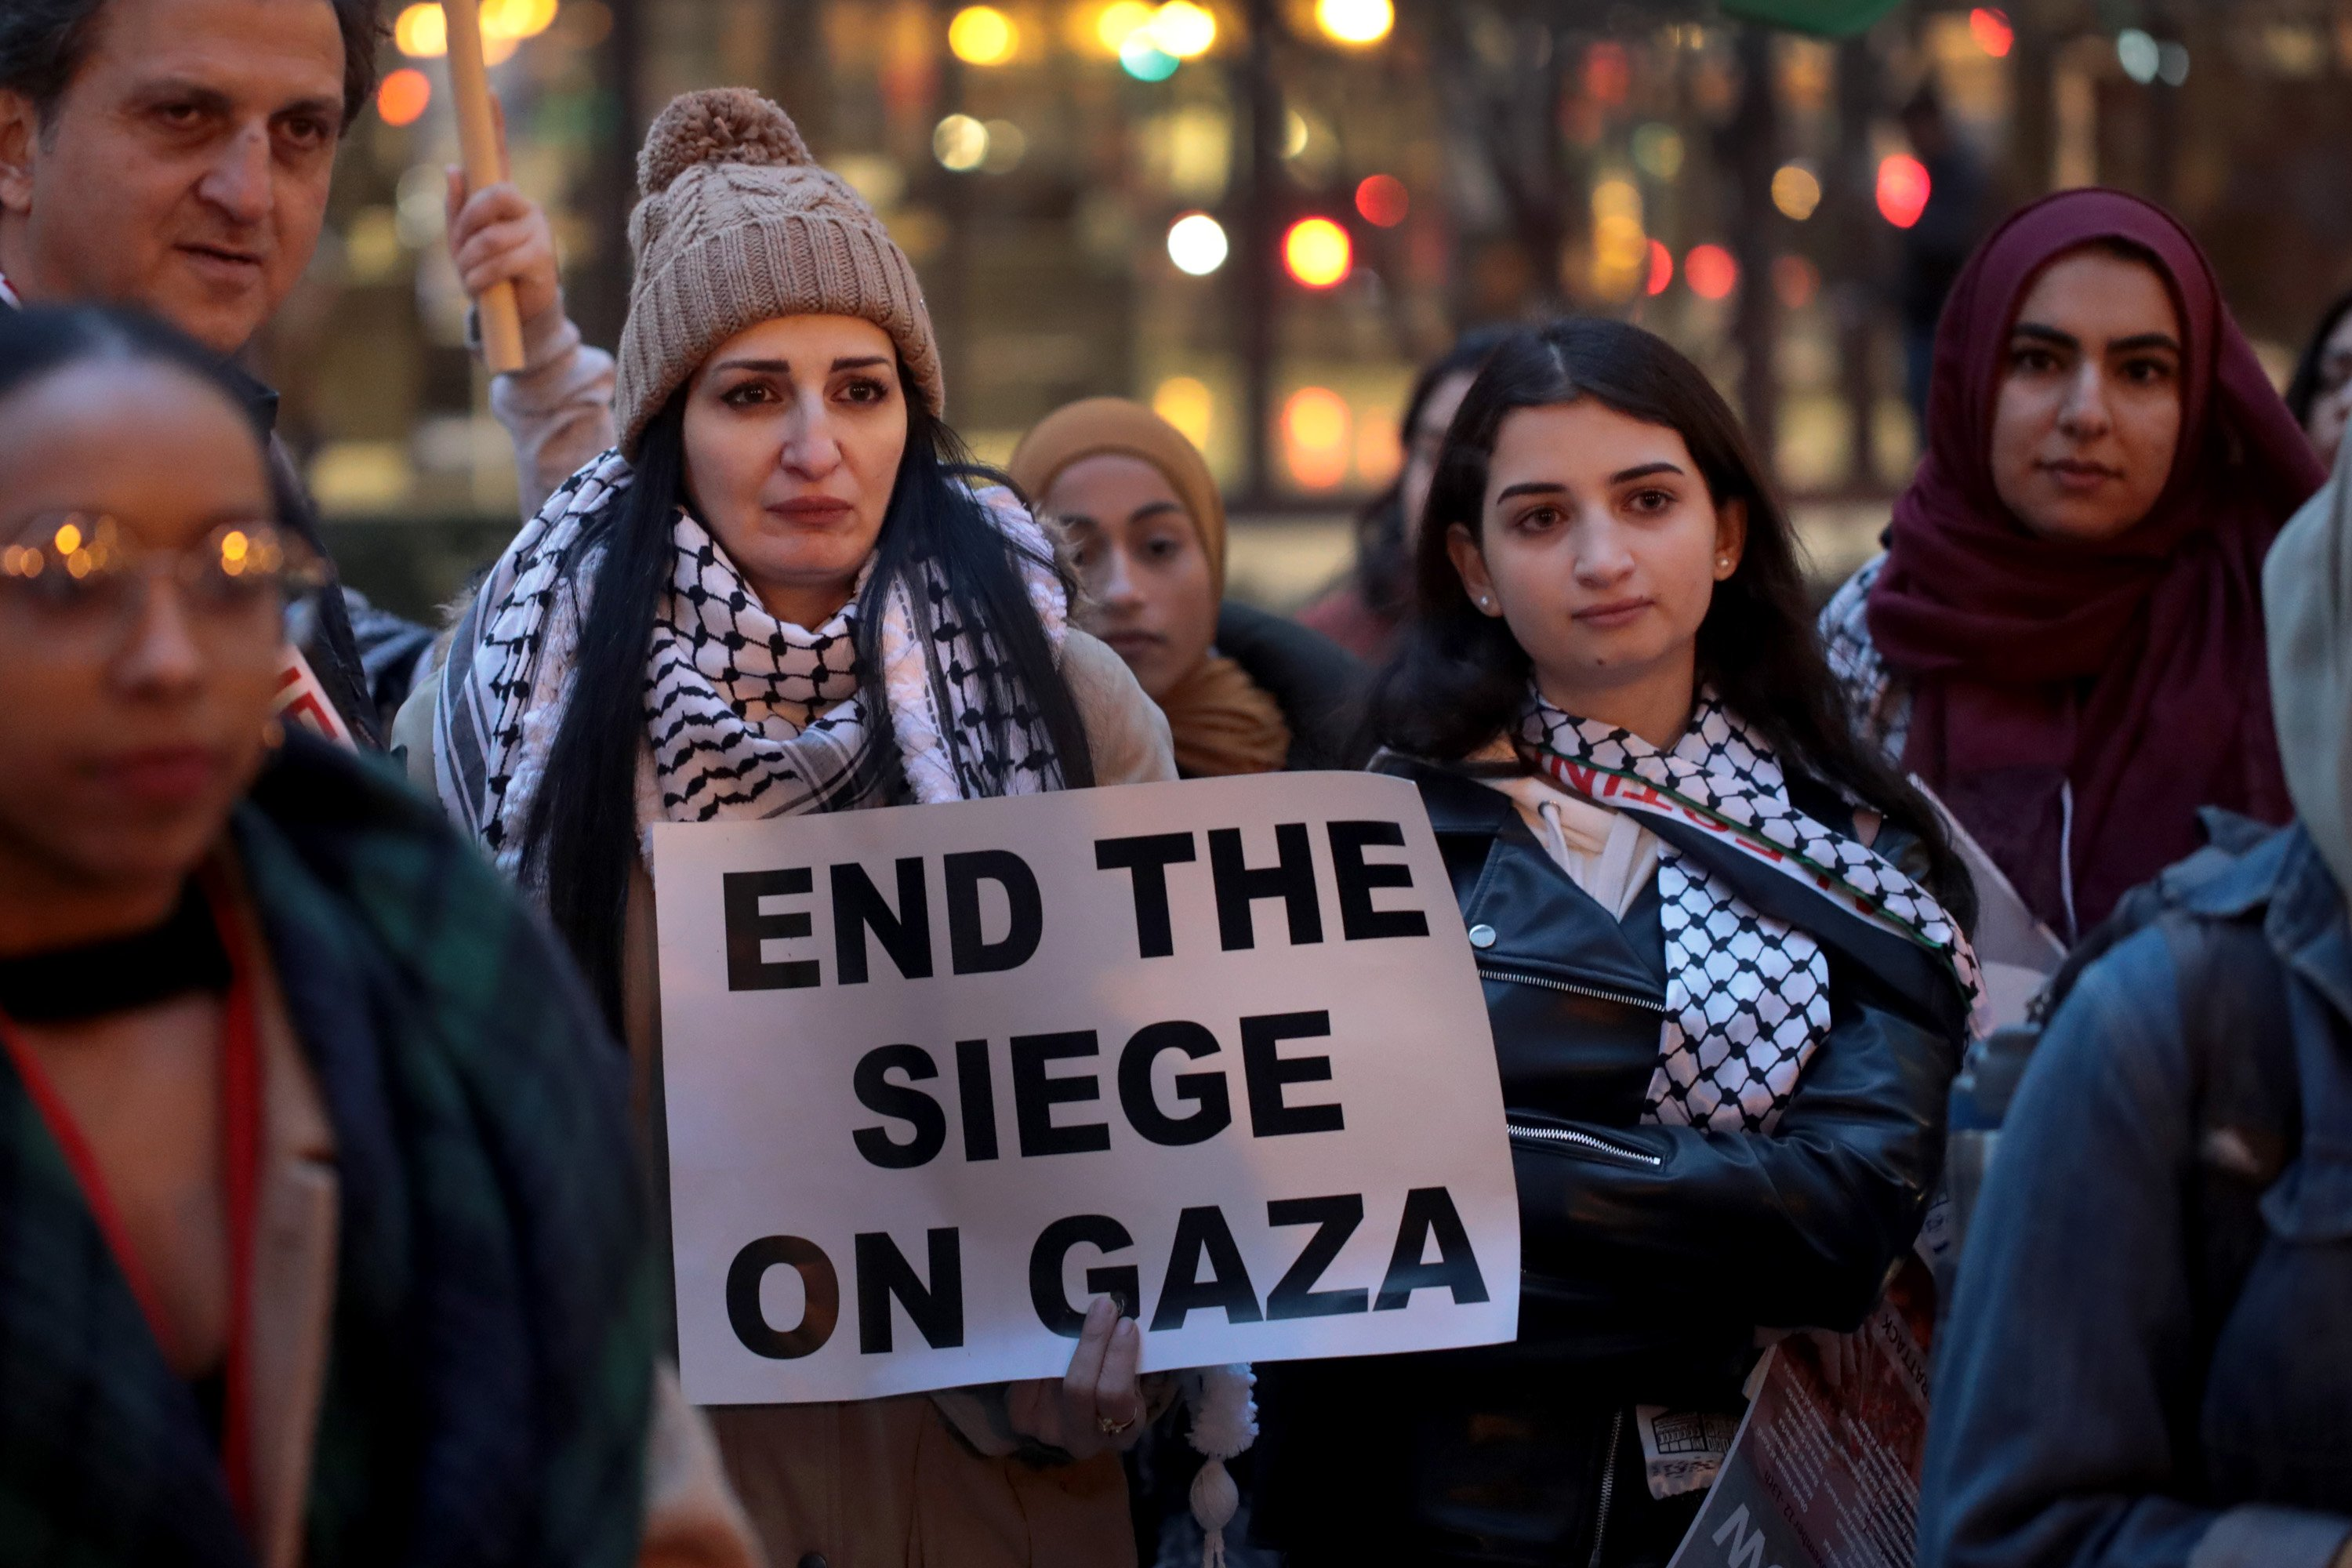 Demonstrators in the Federal Building Plaza protest the deaths of more than 30 Palestinians killed by Israeli air strikes in Gaza on 20 November (AFP)